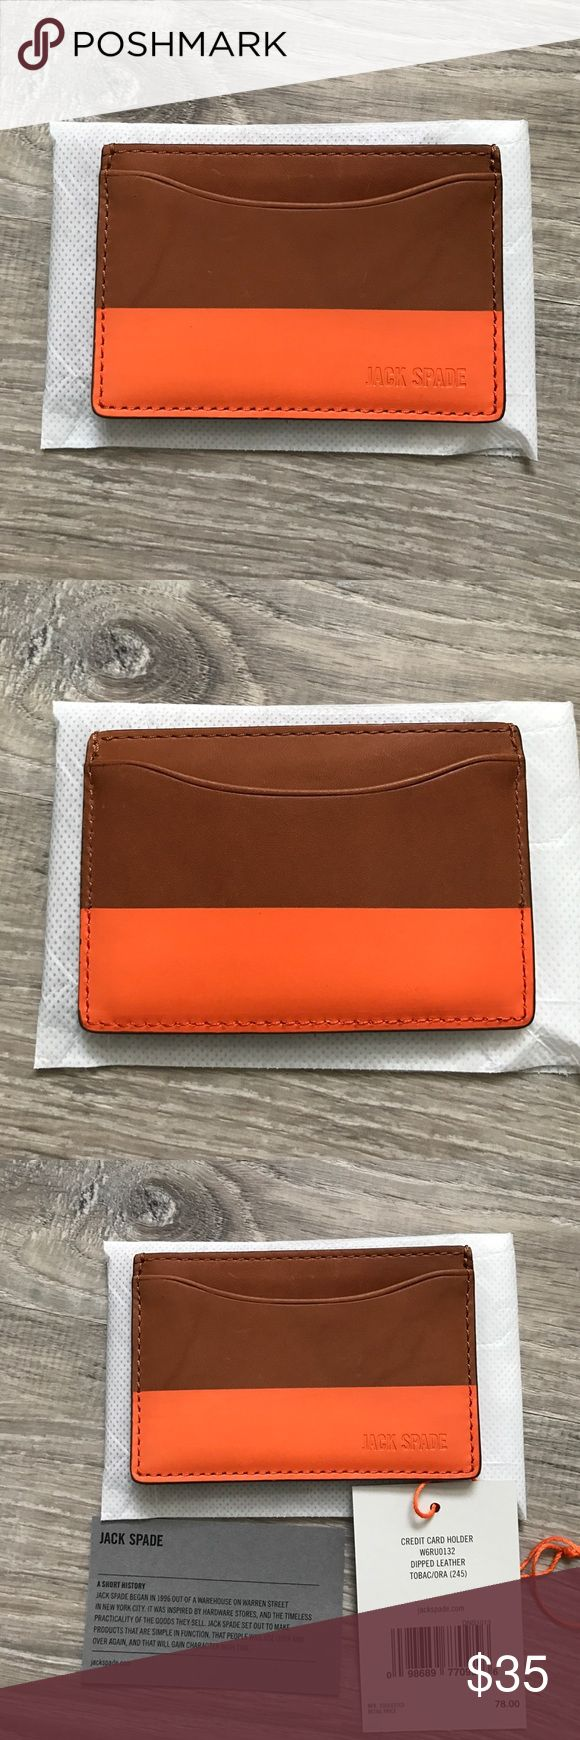 Jack Spade Credit Card Holder Jack Spade Credit Card Holder. Tabacco/Orange dipped leather. *New with tags*. Jack Spade Bags Wallets